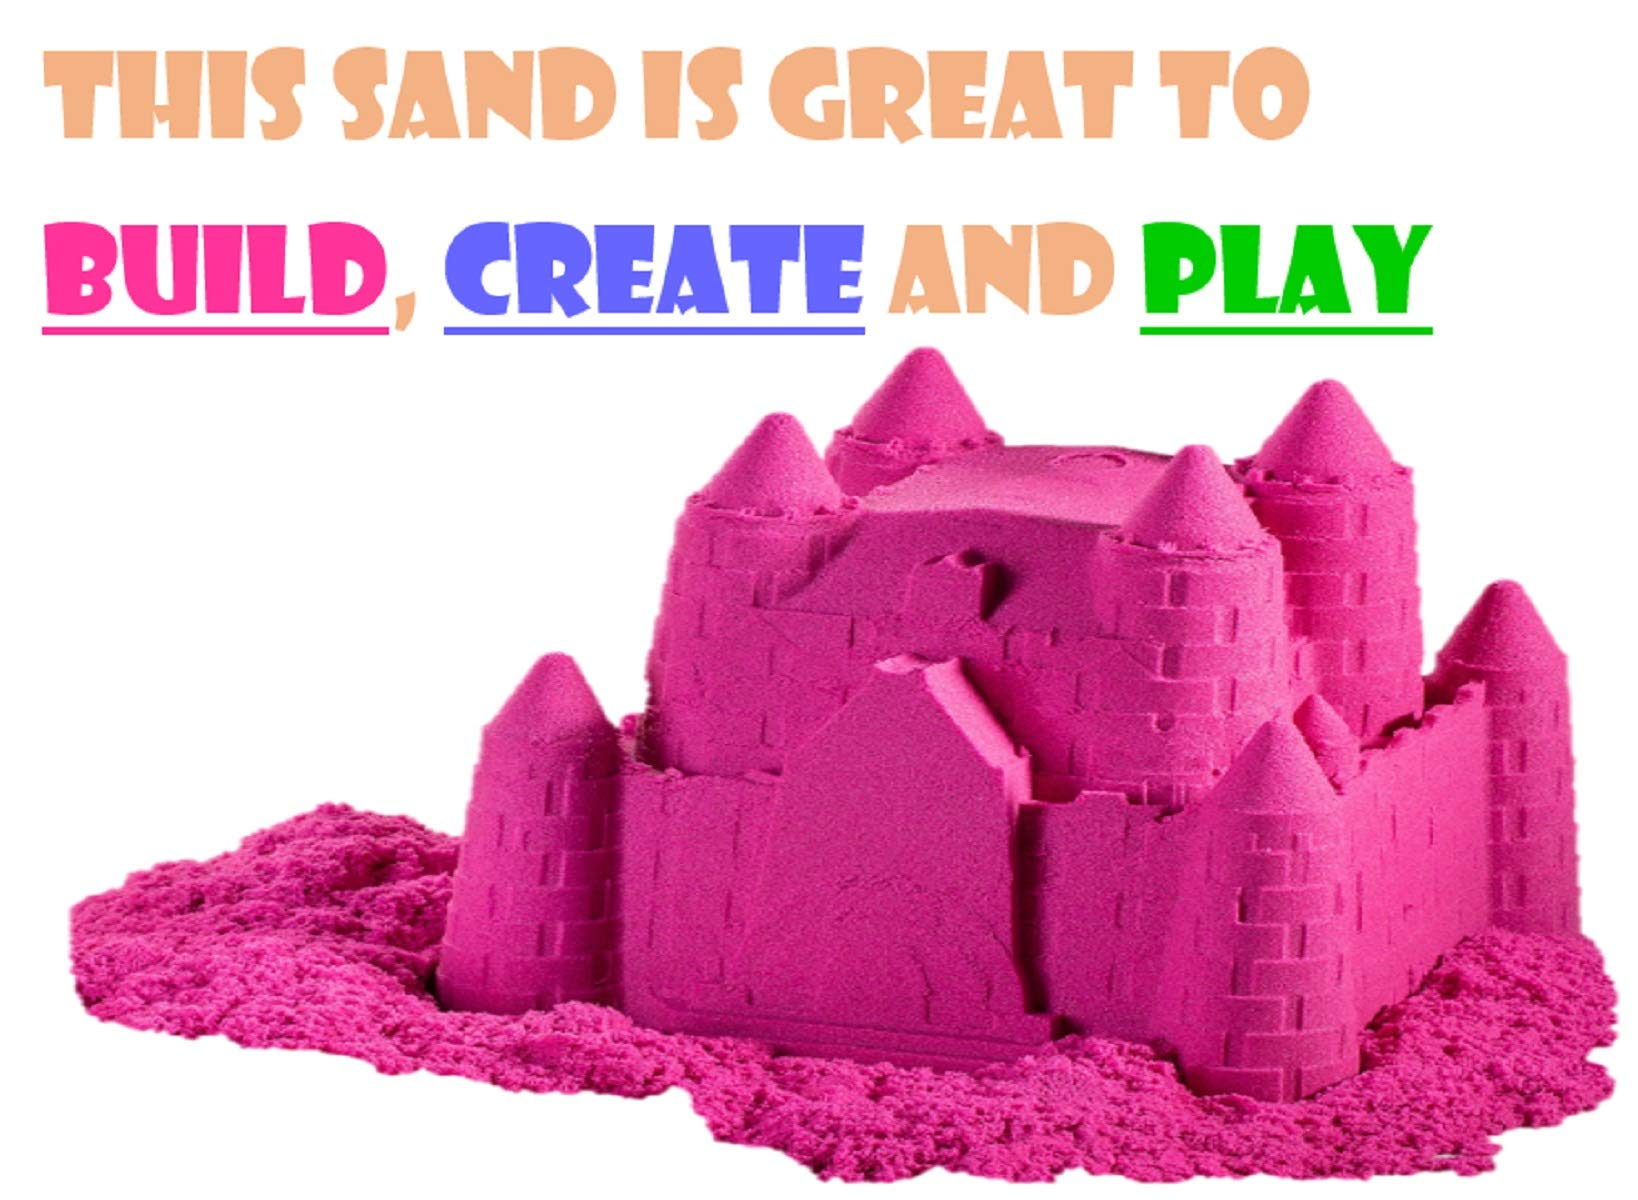 walla Play Sand (5 lbs.) | Pink Play Sand for Kids | Great Kinetic Sensory Toy for Creating Fun, Moldable Sand Art & Work On Fine Motor Skills | Bring The Beach to Your Home with Mess-Free Magic Sand by walla (Image #3)